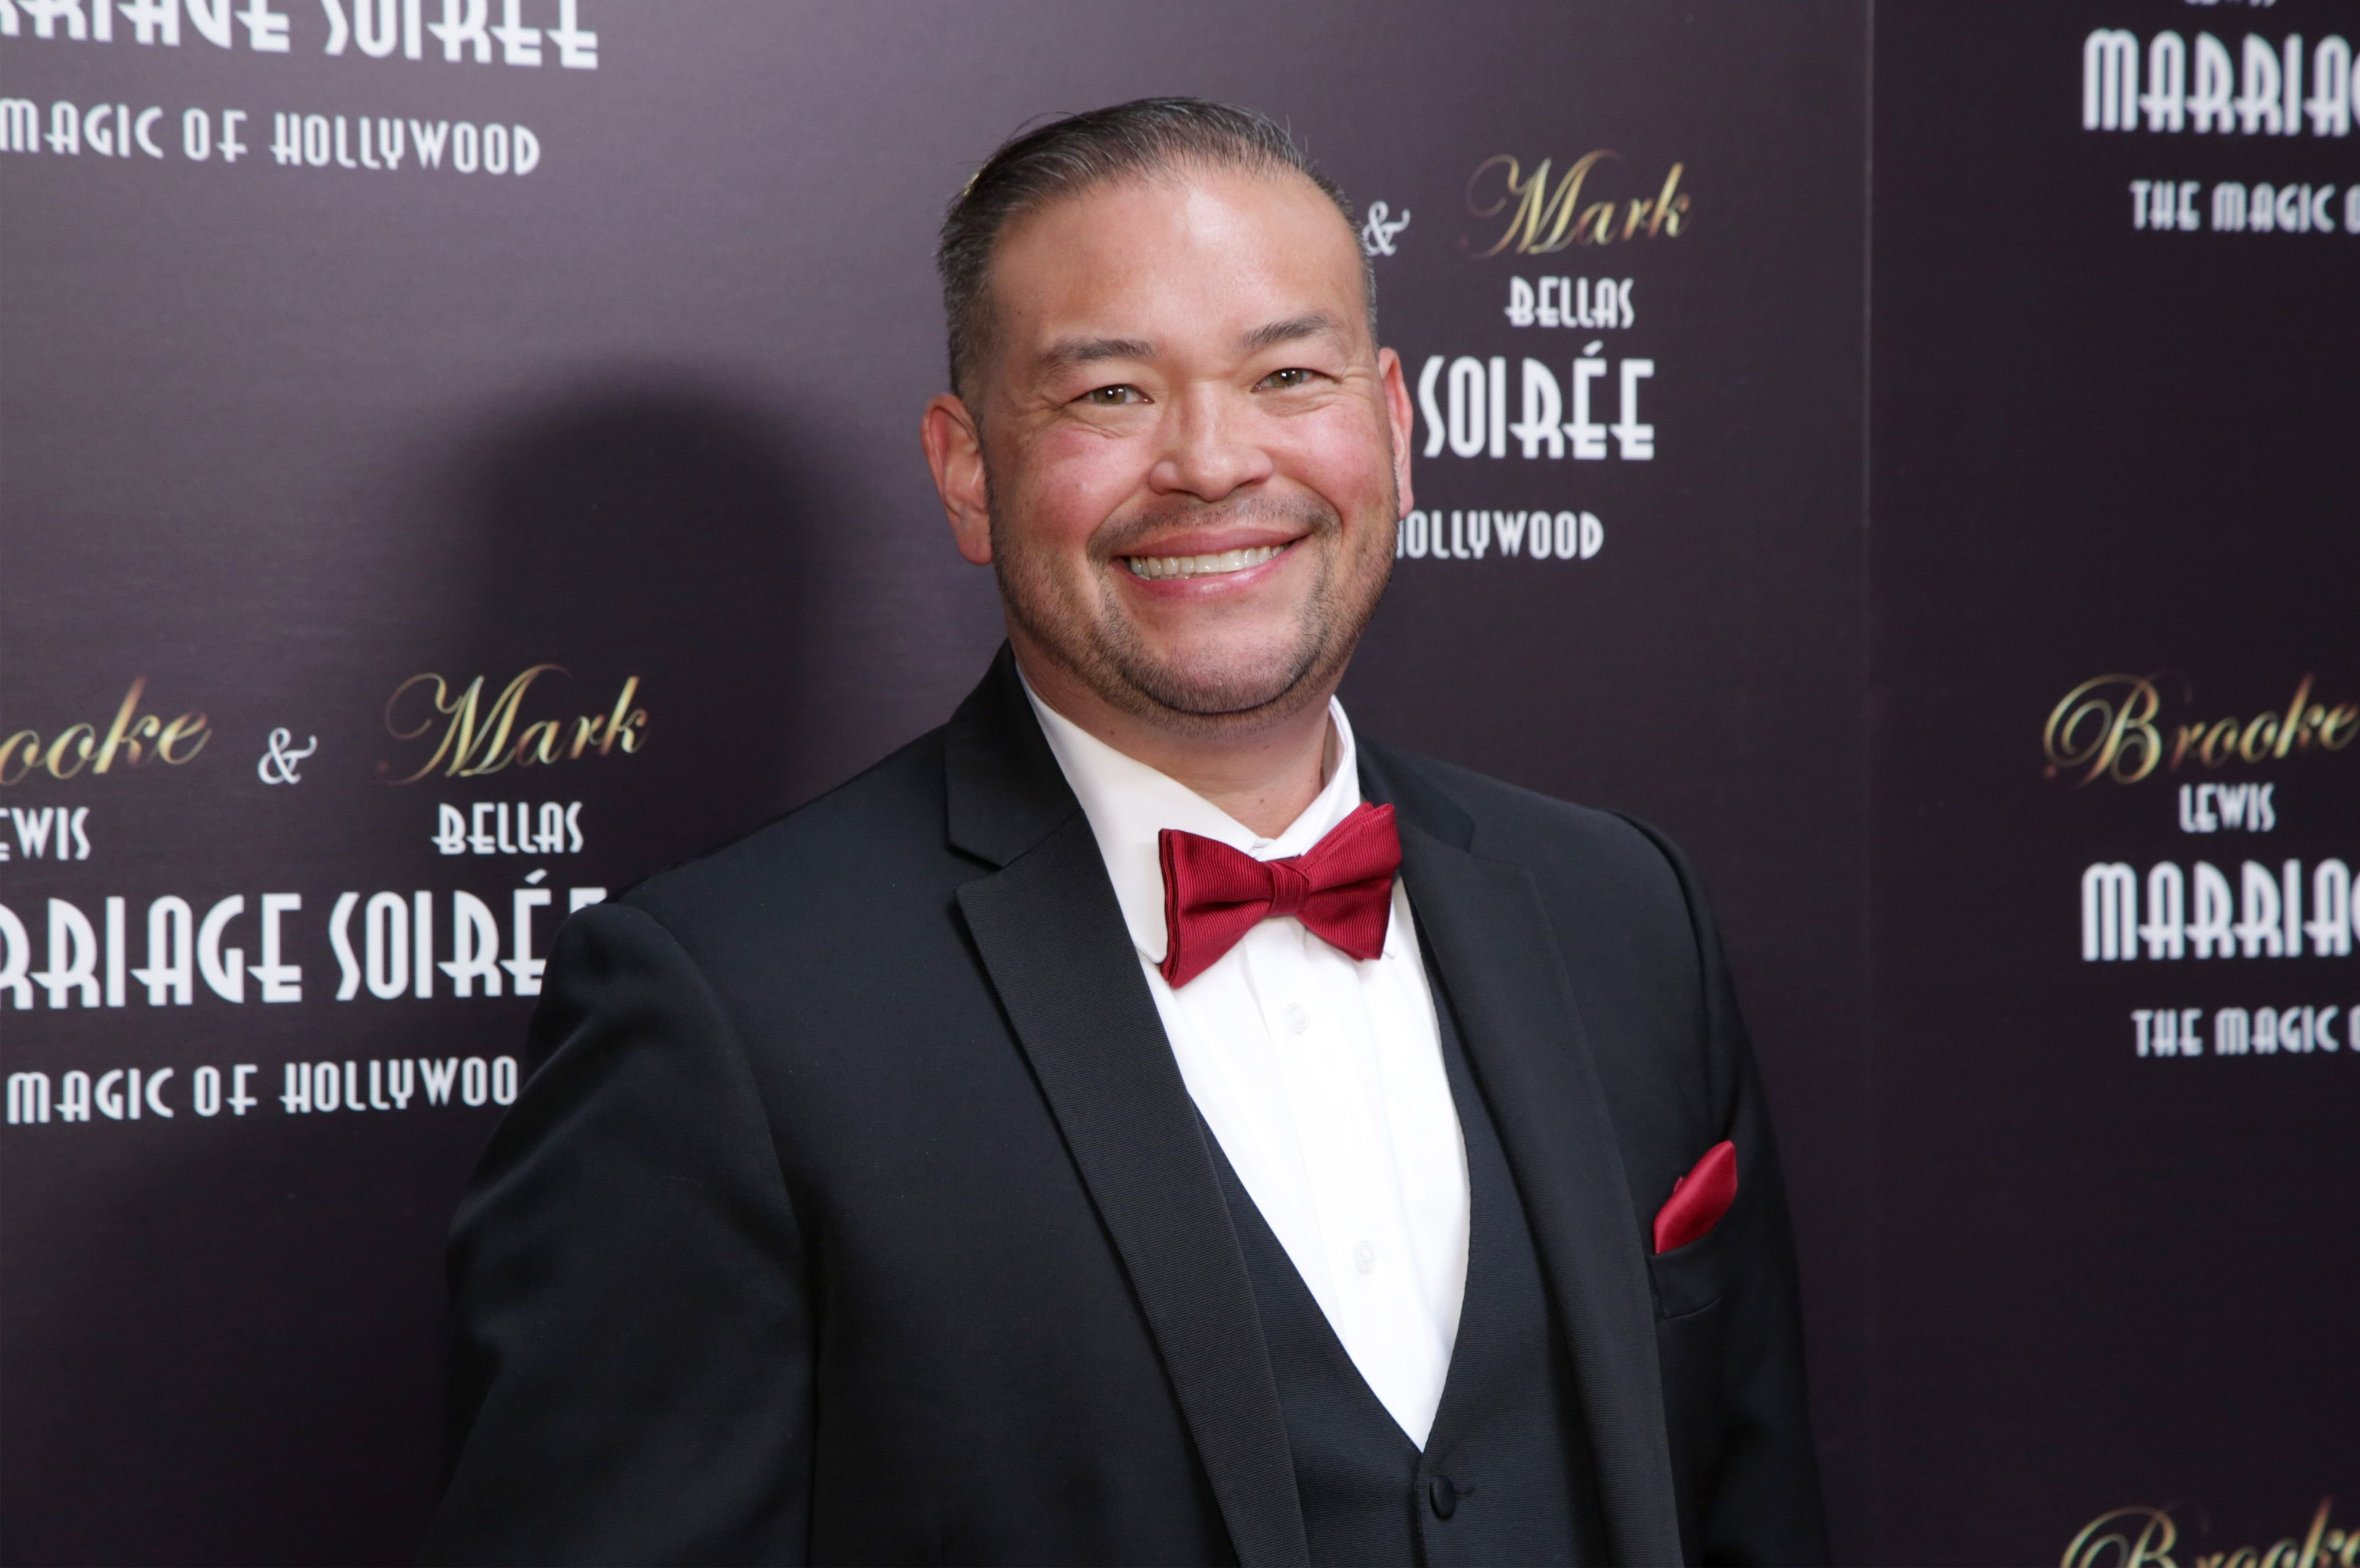 """Jon Gosselin at Brooke & Mark's Marriage Soiree """"The Magic Of Hollywood"""" at the Houdini Estate on June 01, 2019 